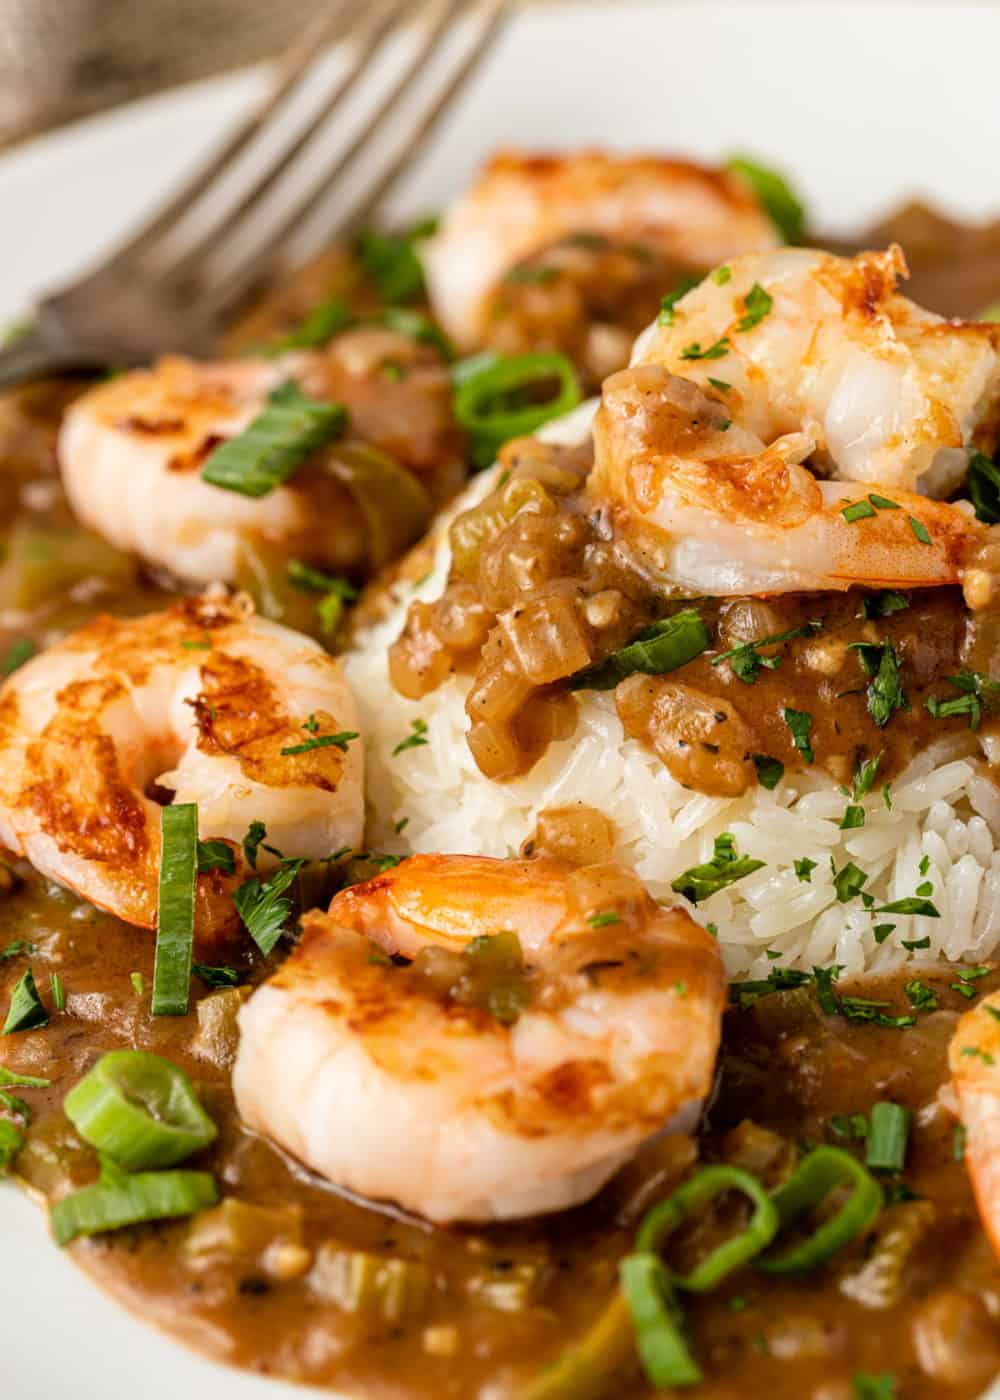 Cajun spiced seafood in dark roux gravy on bed of white rice